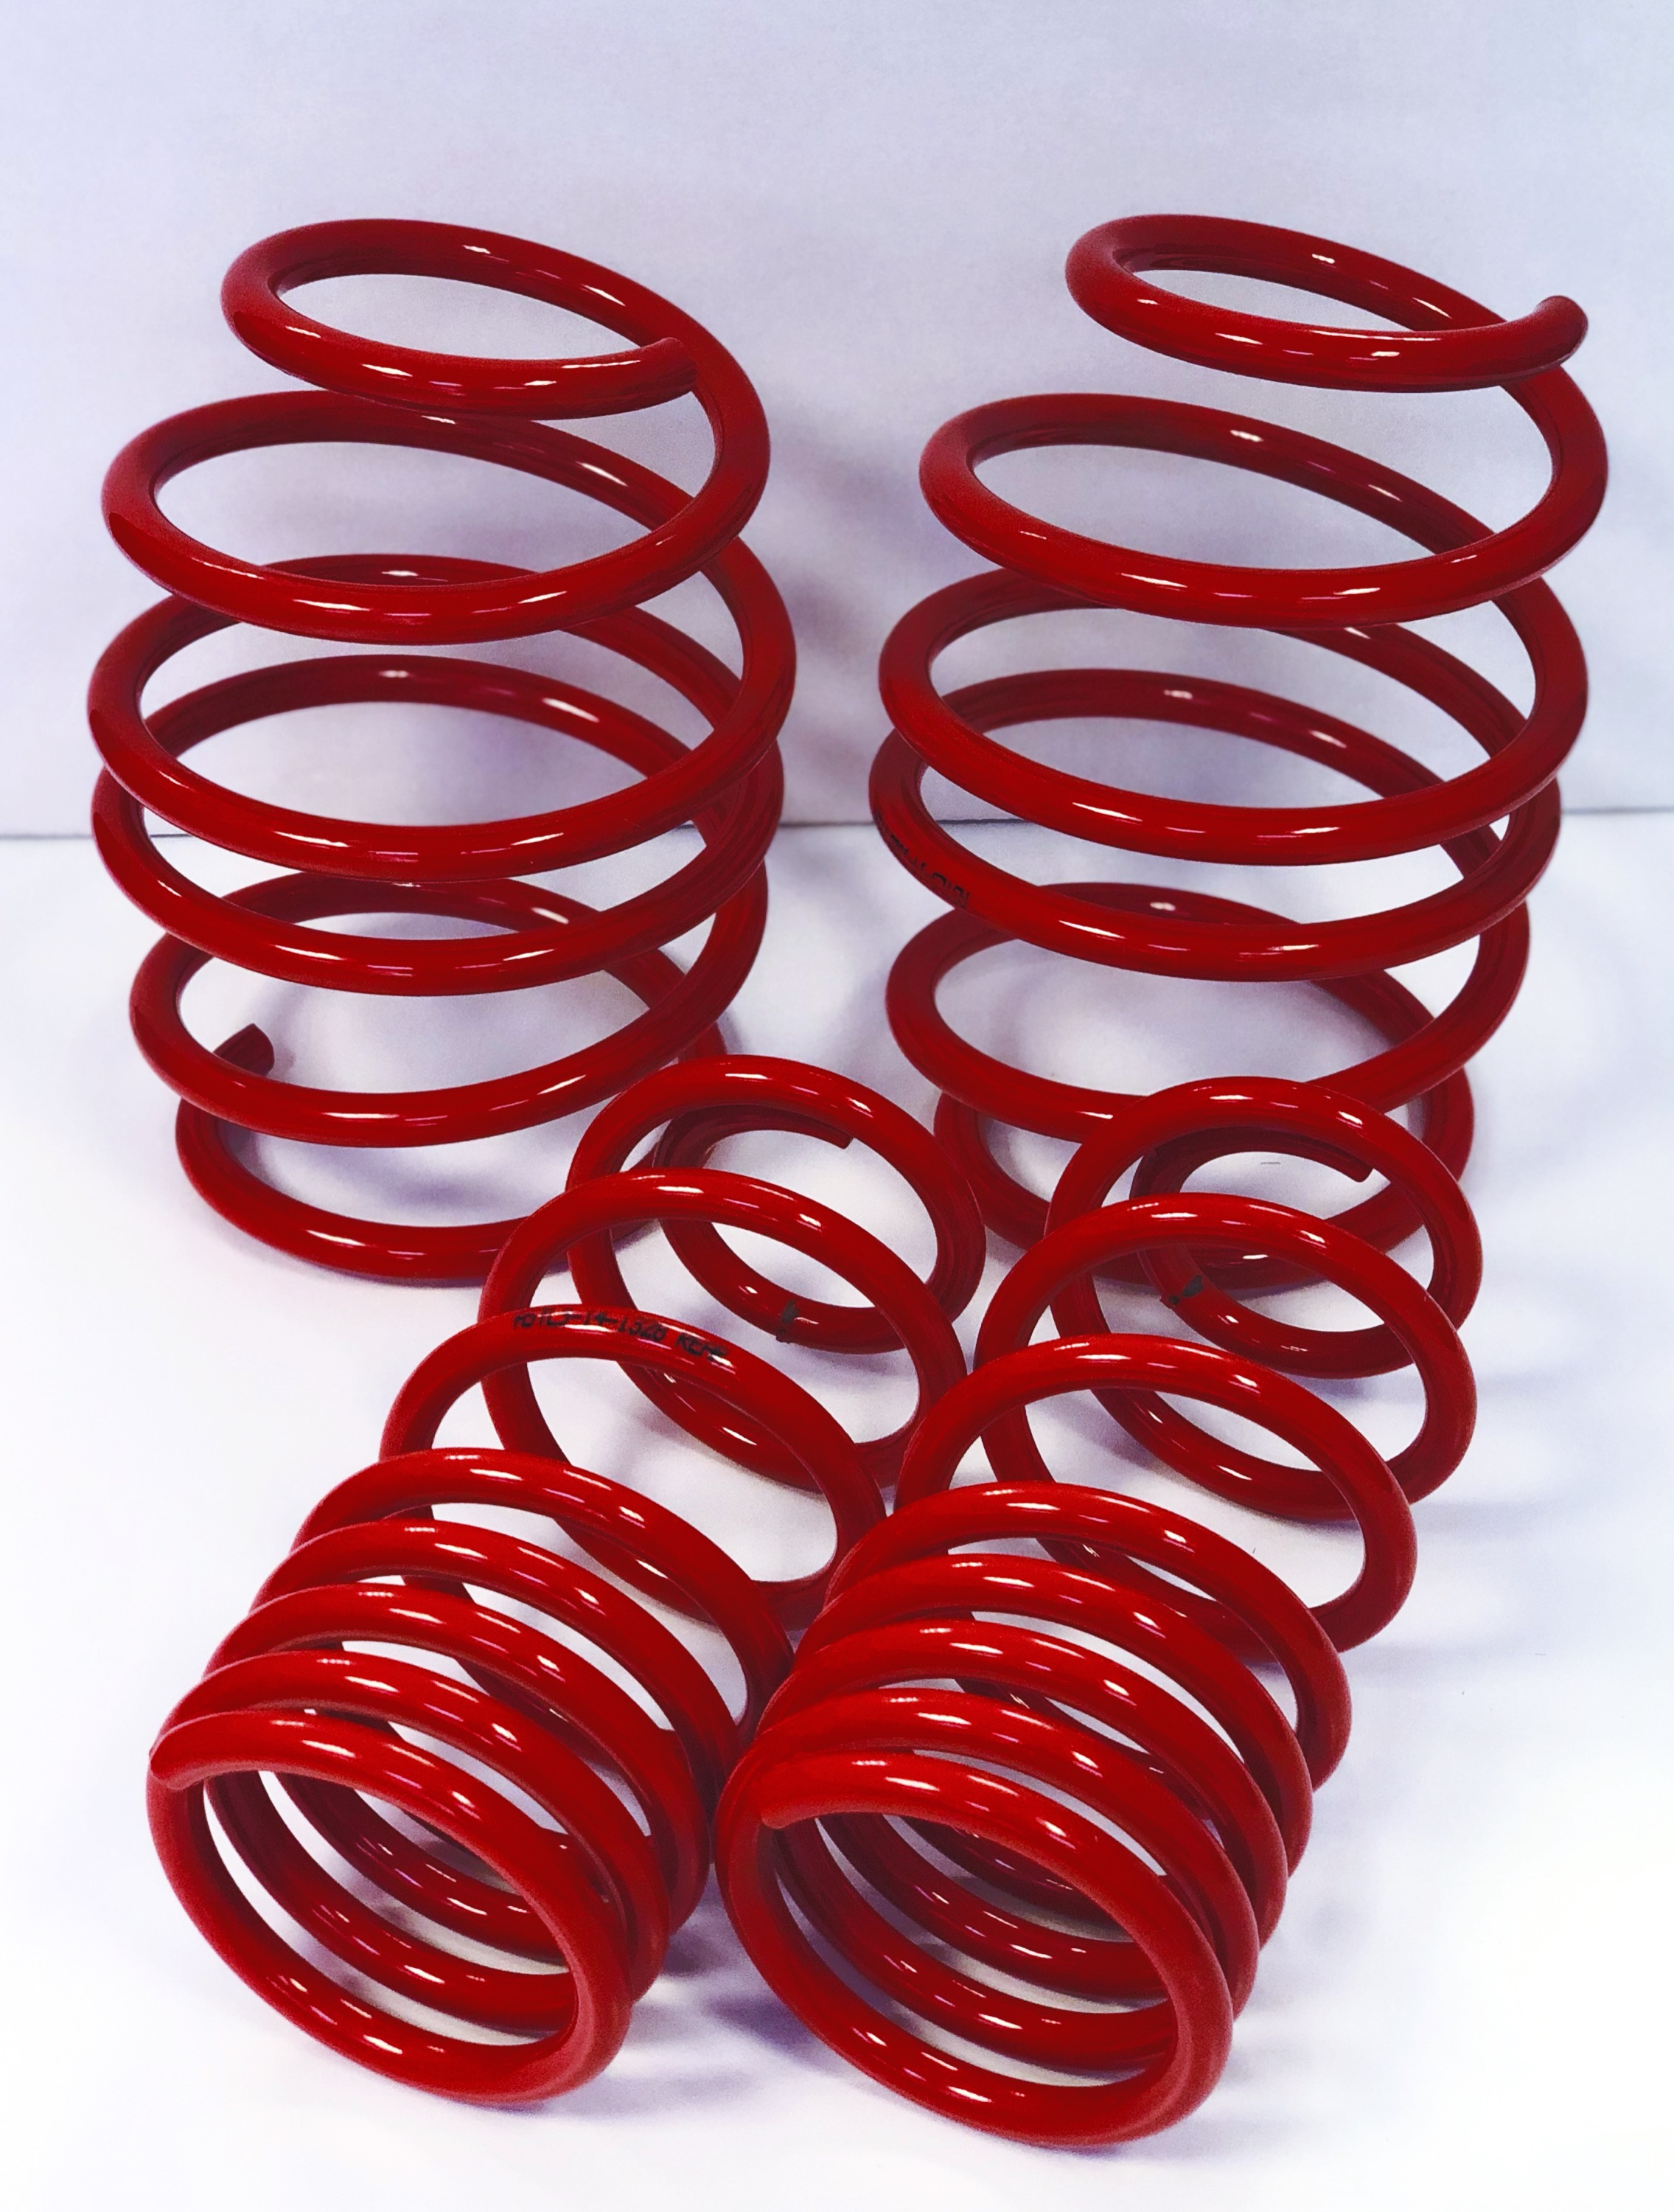 Renault CLIO AST Suspension Lowering Springs 30/25